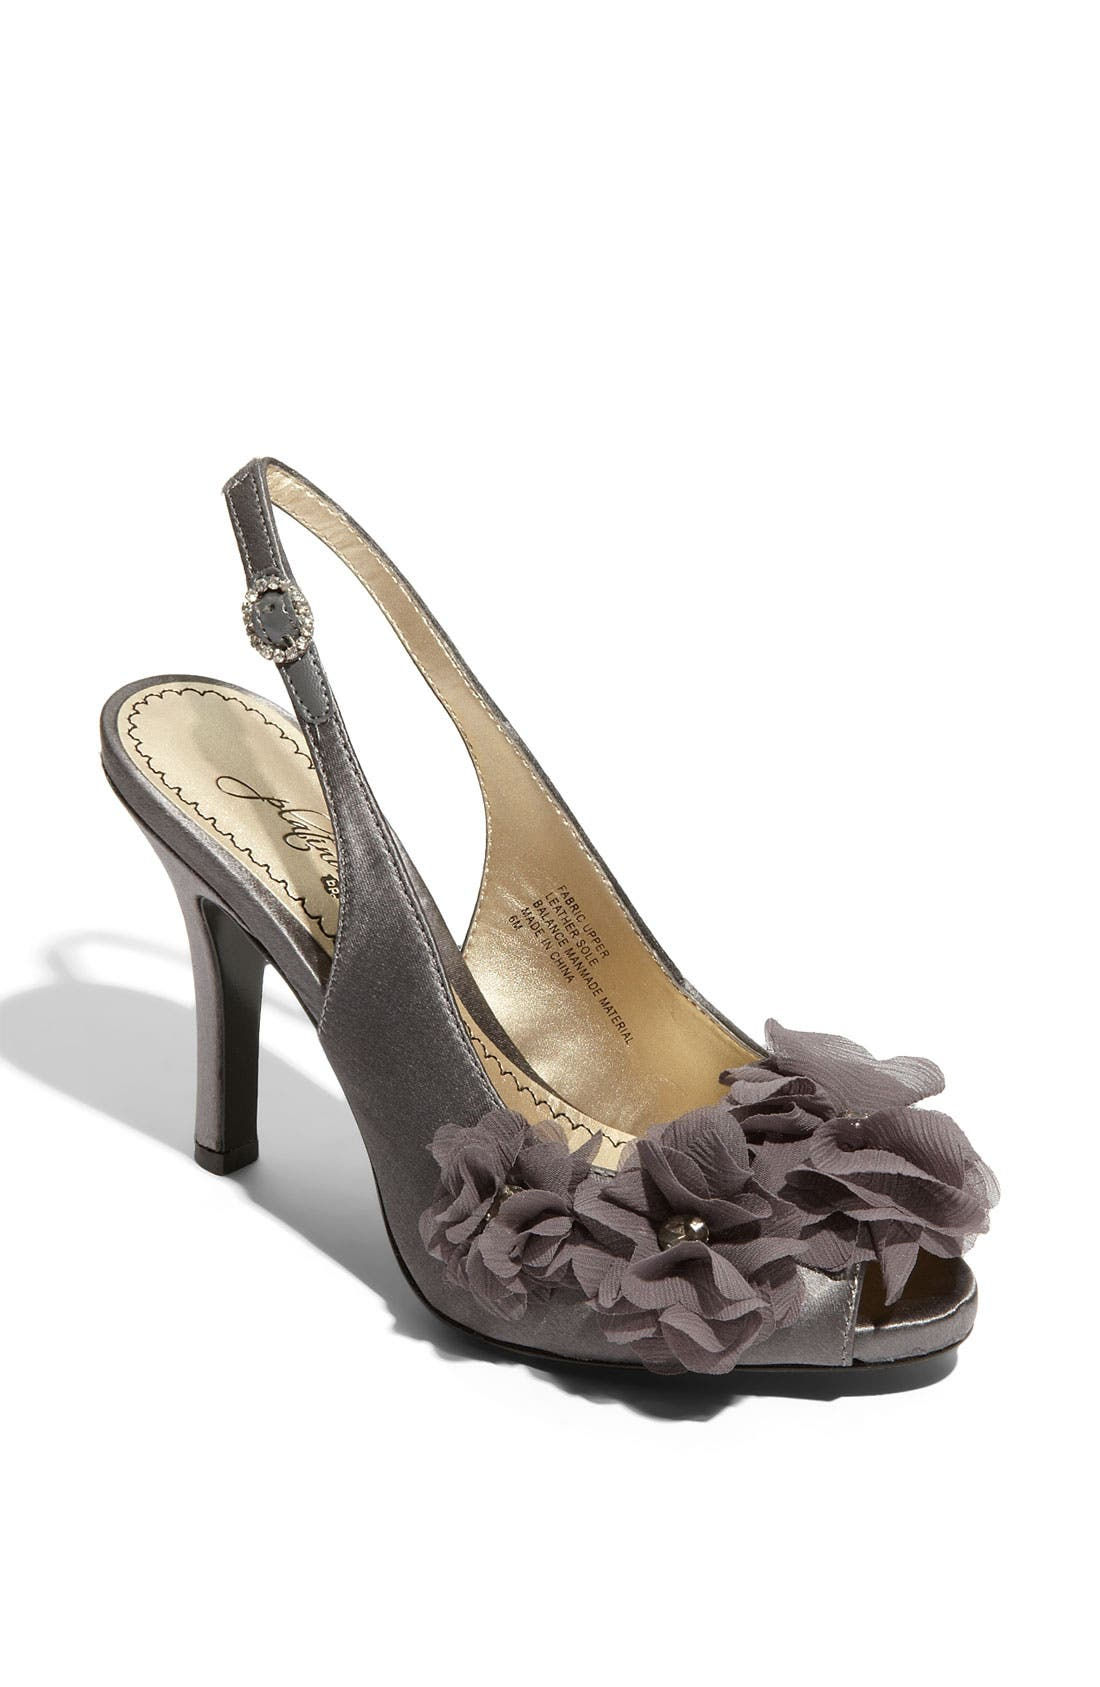 Alternate Image 1 Selected - BP. 'Summer' Satin Pump